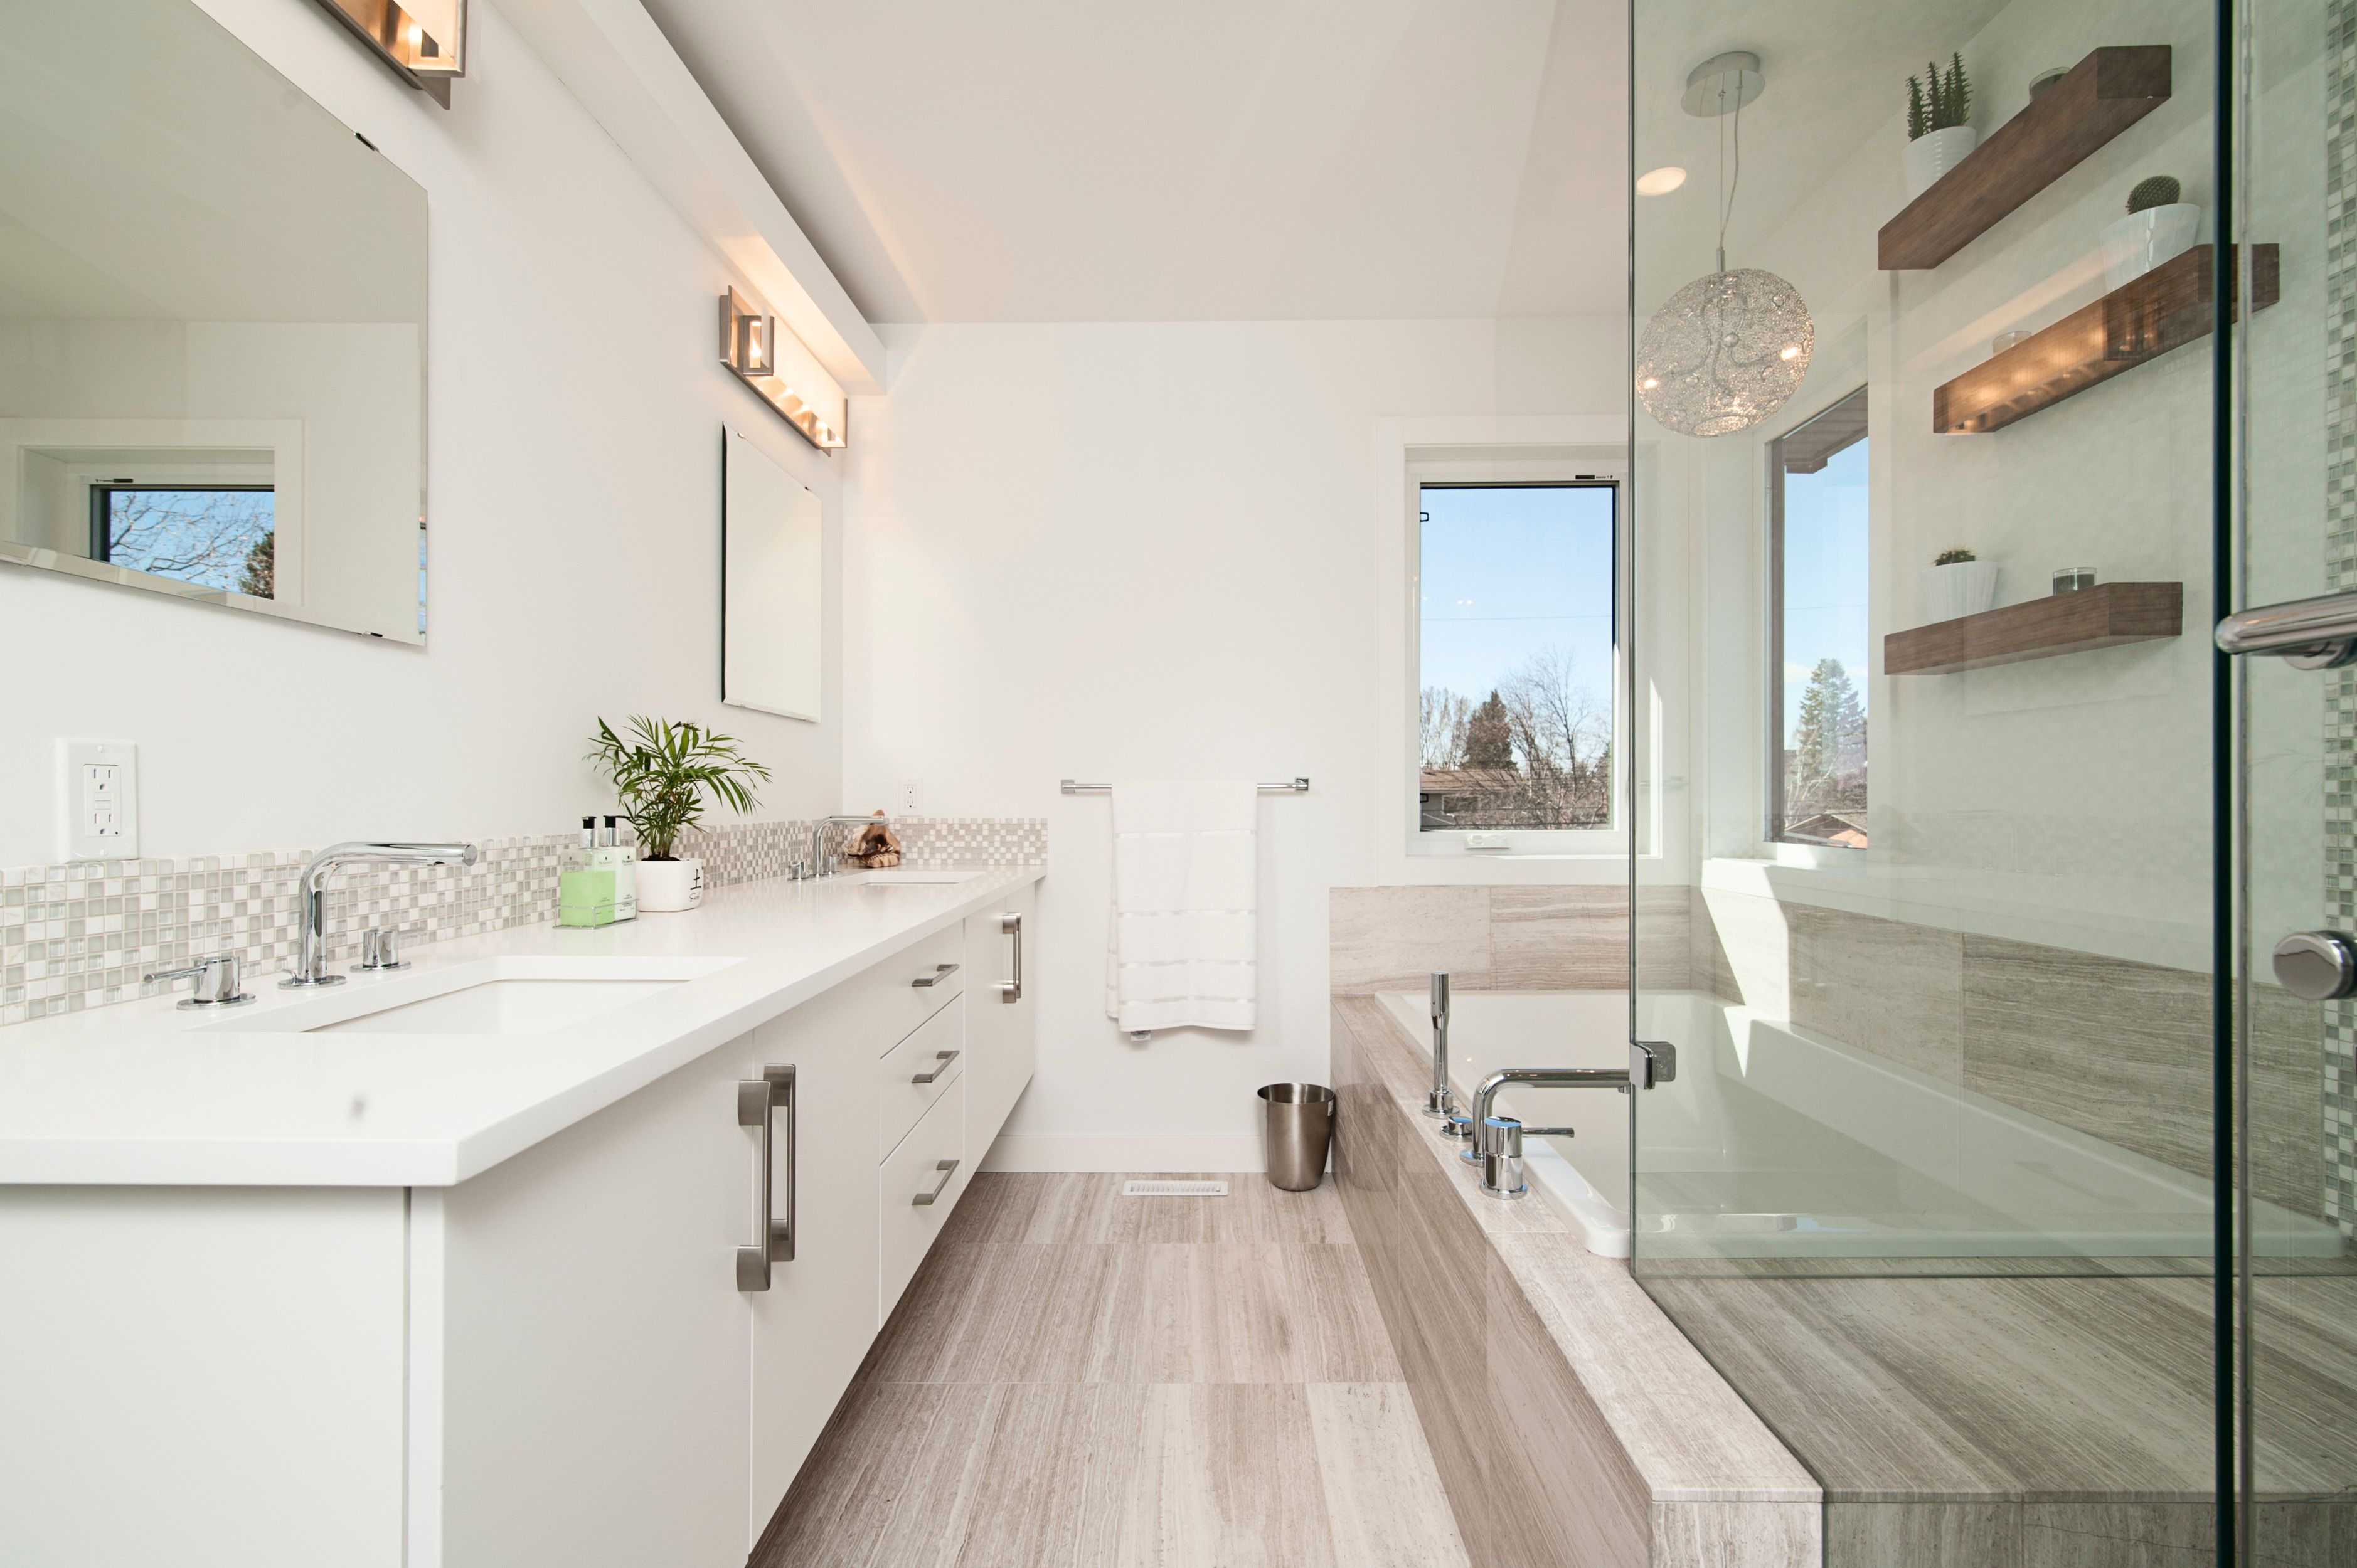 Give Yourself the Bathroom Remodel You Deserve